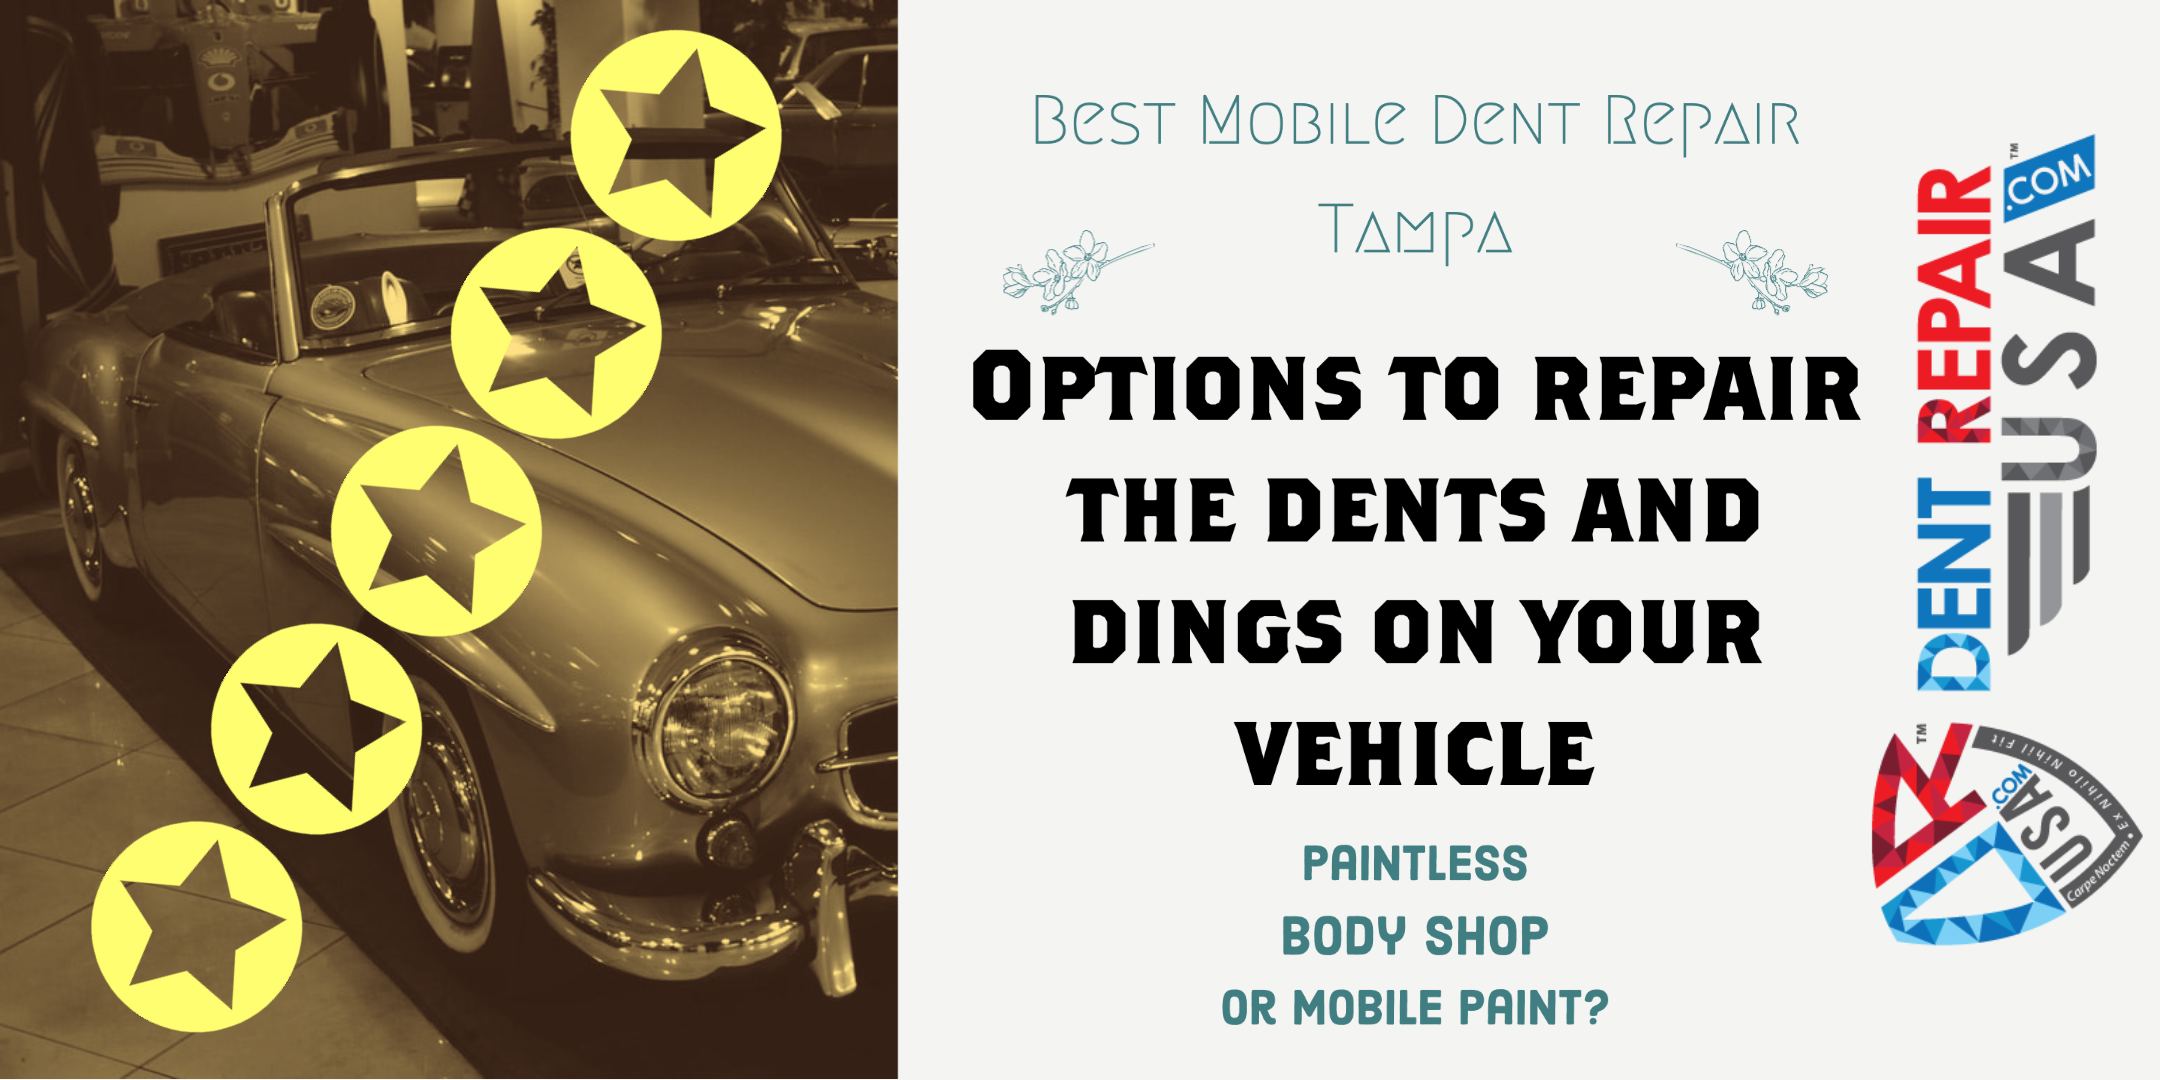 1. Best Mobile Dent Repair Service in Tampa Florida